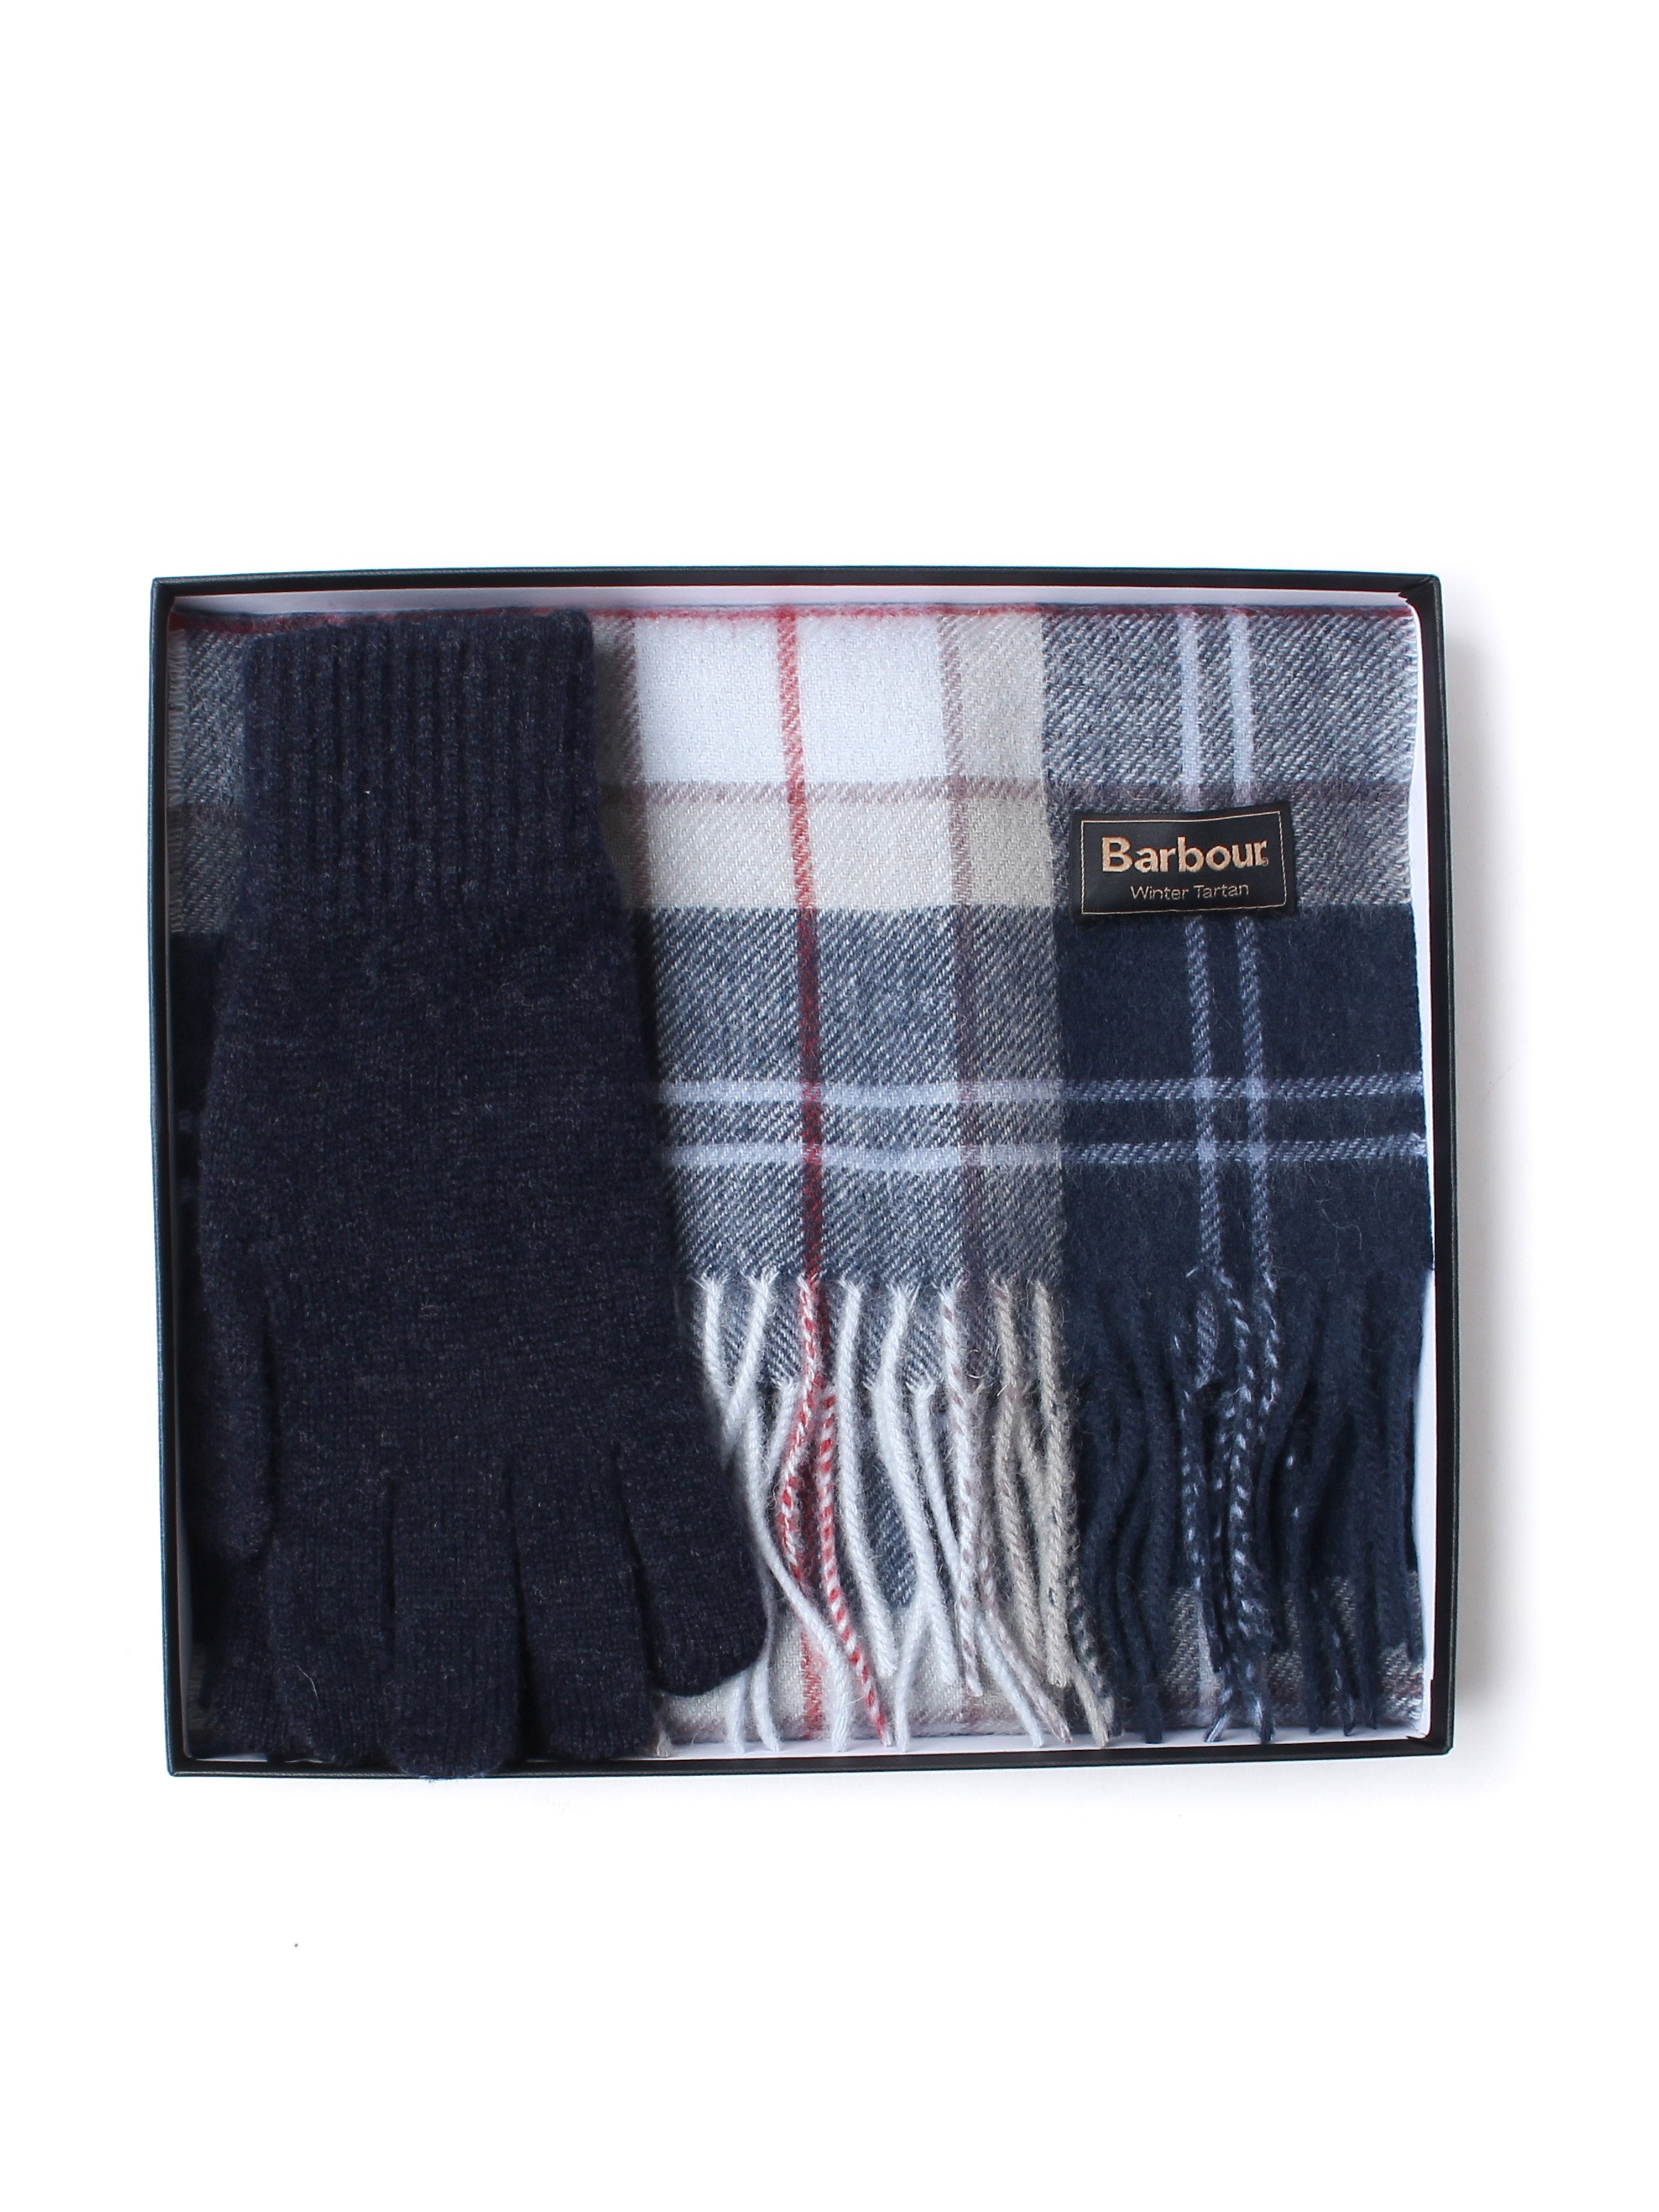 Barbour Scarf and Gloves Gift Box - Navy Classic Tartan